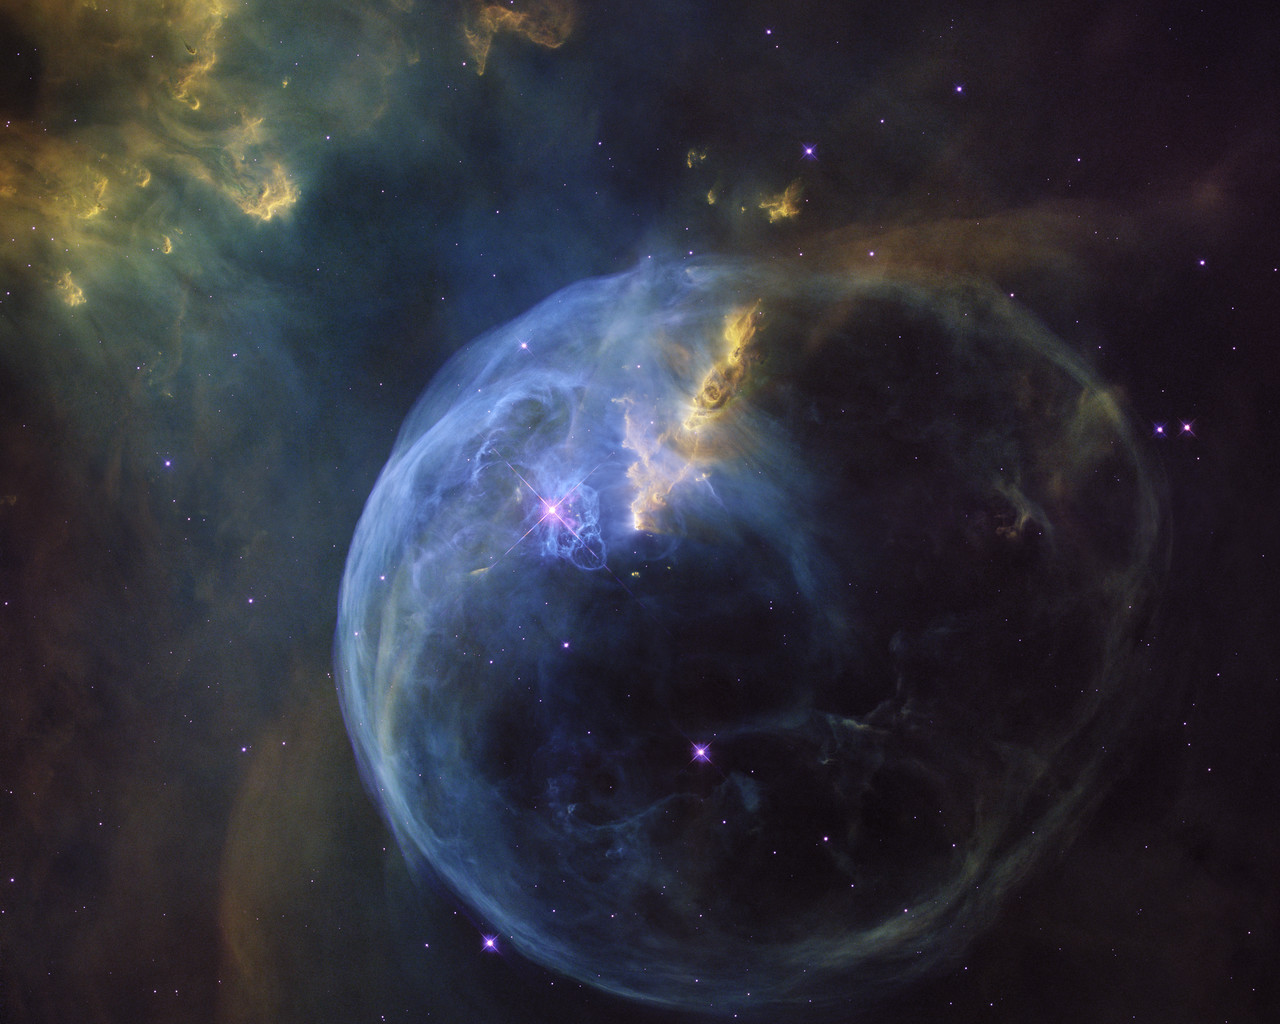 The Bubble Nebula, also known as NGC 7635, is an emission nebula located 8 000 light-years away. This stunning new image was observed by the NASA/ESA Hubble Space Telescope to celebrate its 26th year in space.